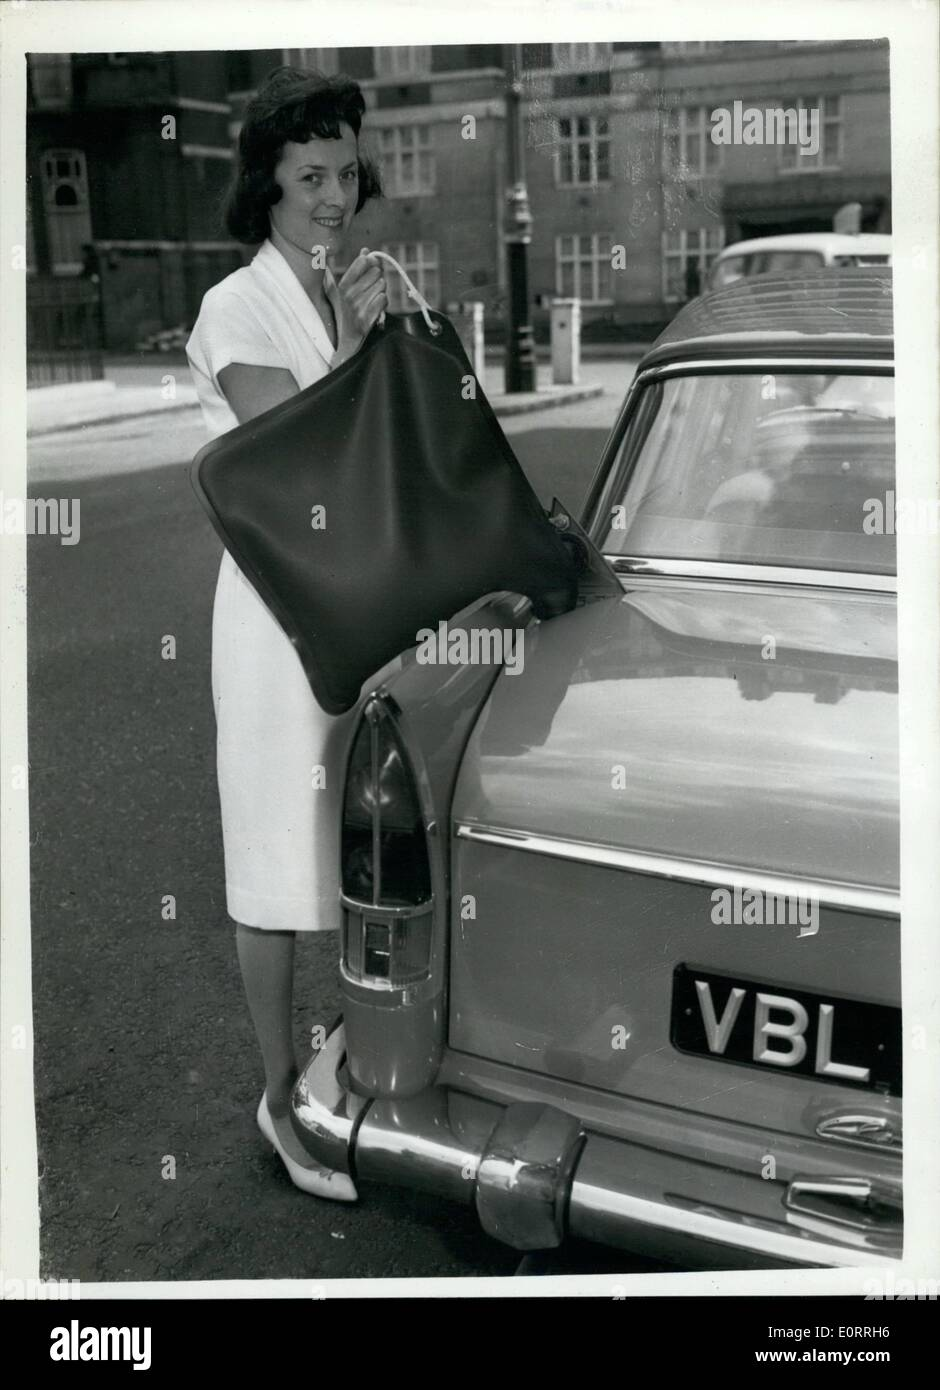 May 05, 1960 - New uses for nylon container for Petrol; Yvonne Mintrans of Fawley, Hants demonstrates a new liquid container - which holds four gallons of Petrol. This is one of the many new items made of Nylon demonstrated at the British Nylon Spinners Exhibition in Park Lane today. - Stock Image